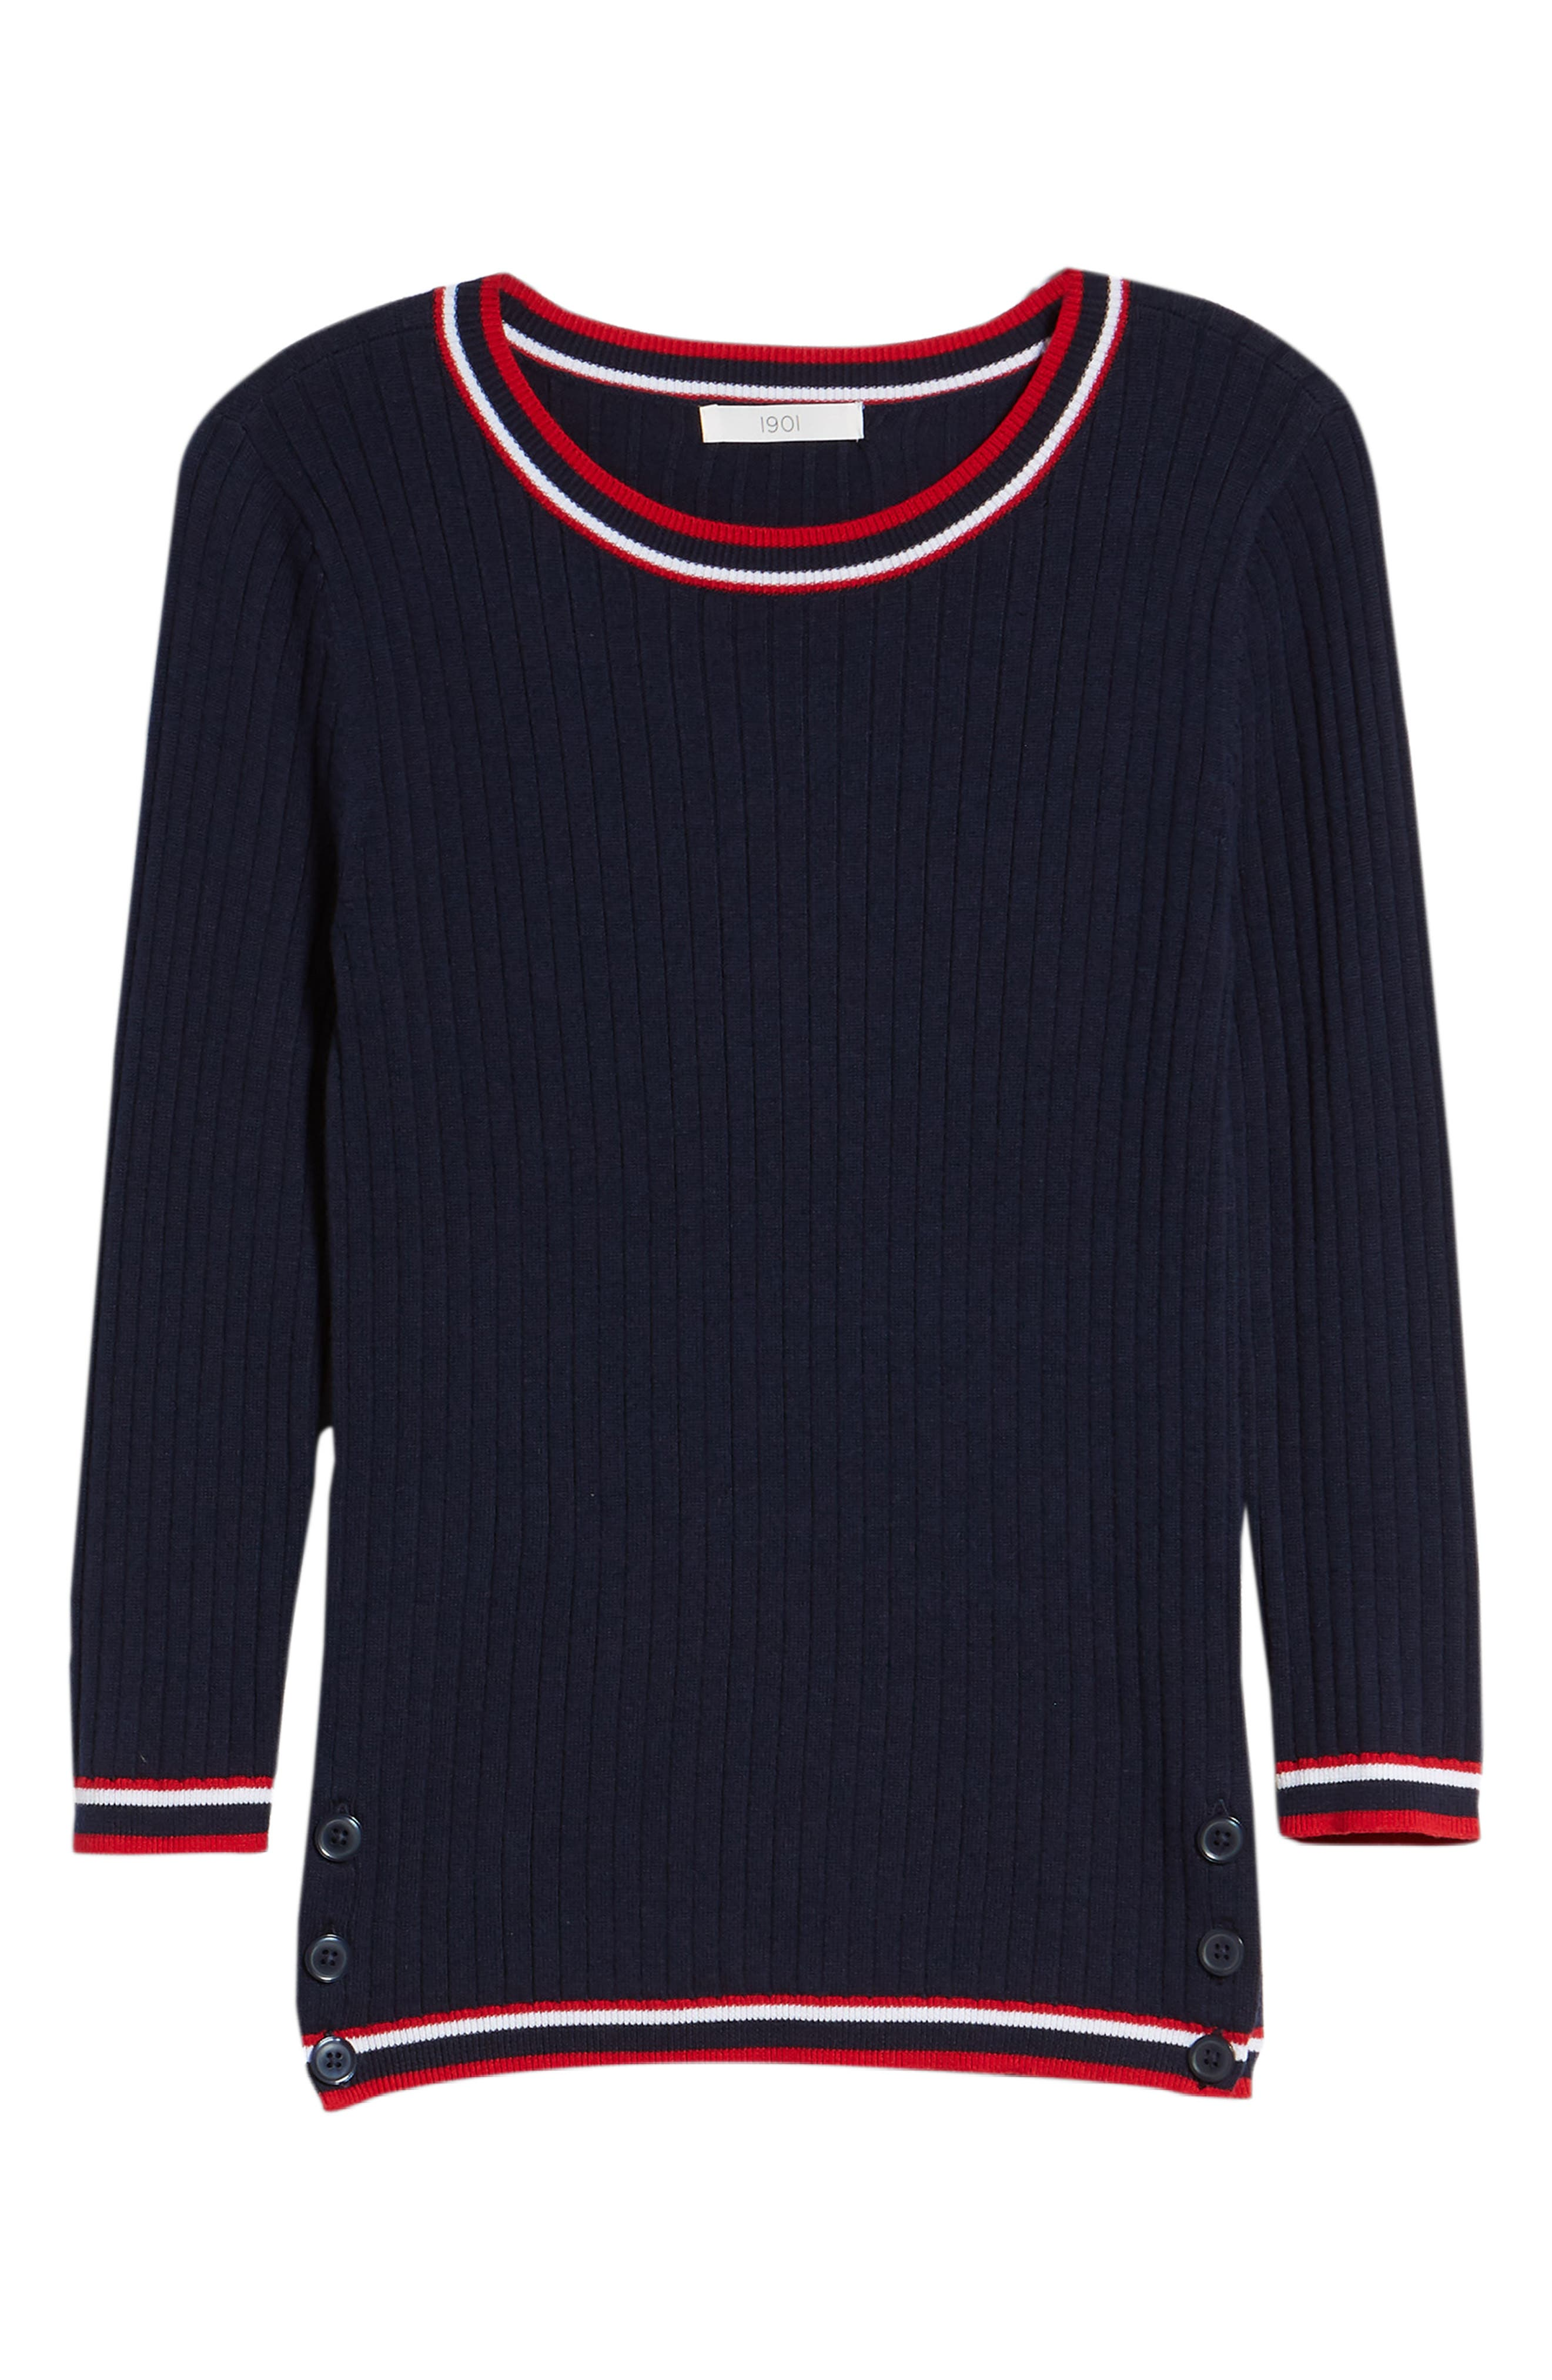 Tipped Cotton Blend Ribbed Sweater,                             Alternate thumbnail 6, color,                             Navy Peacoat